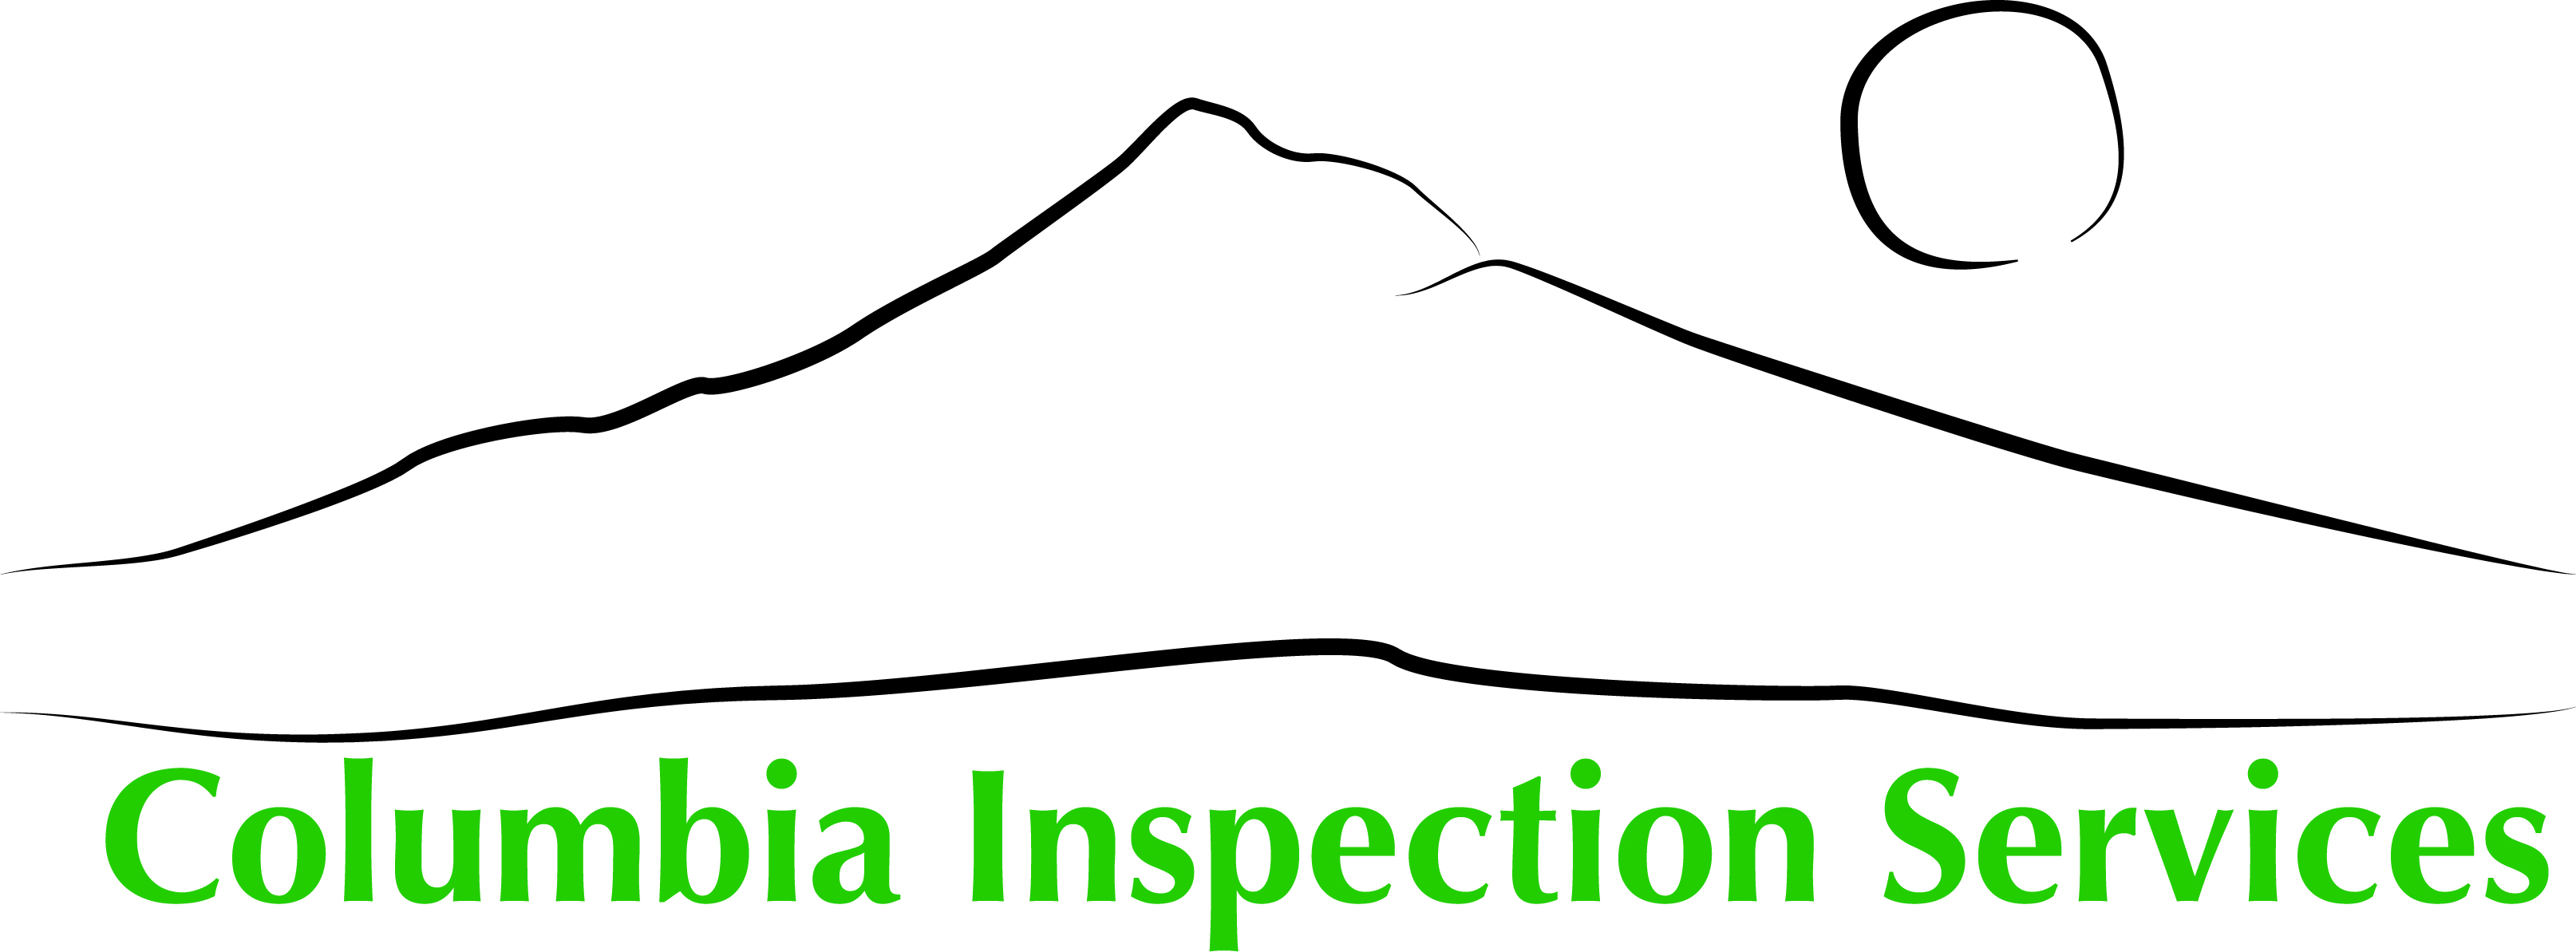 Columbia inspeciation services